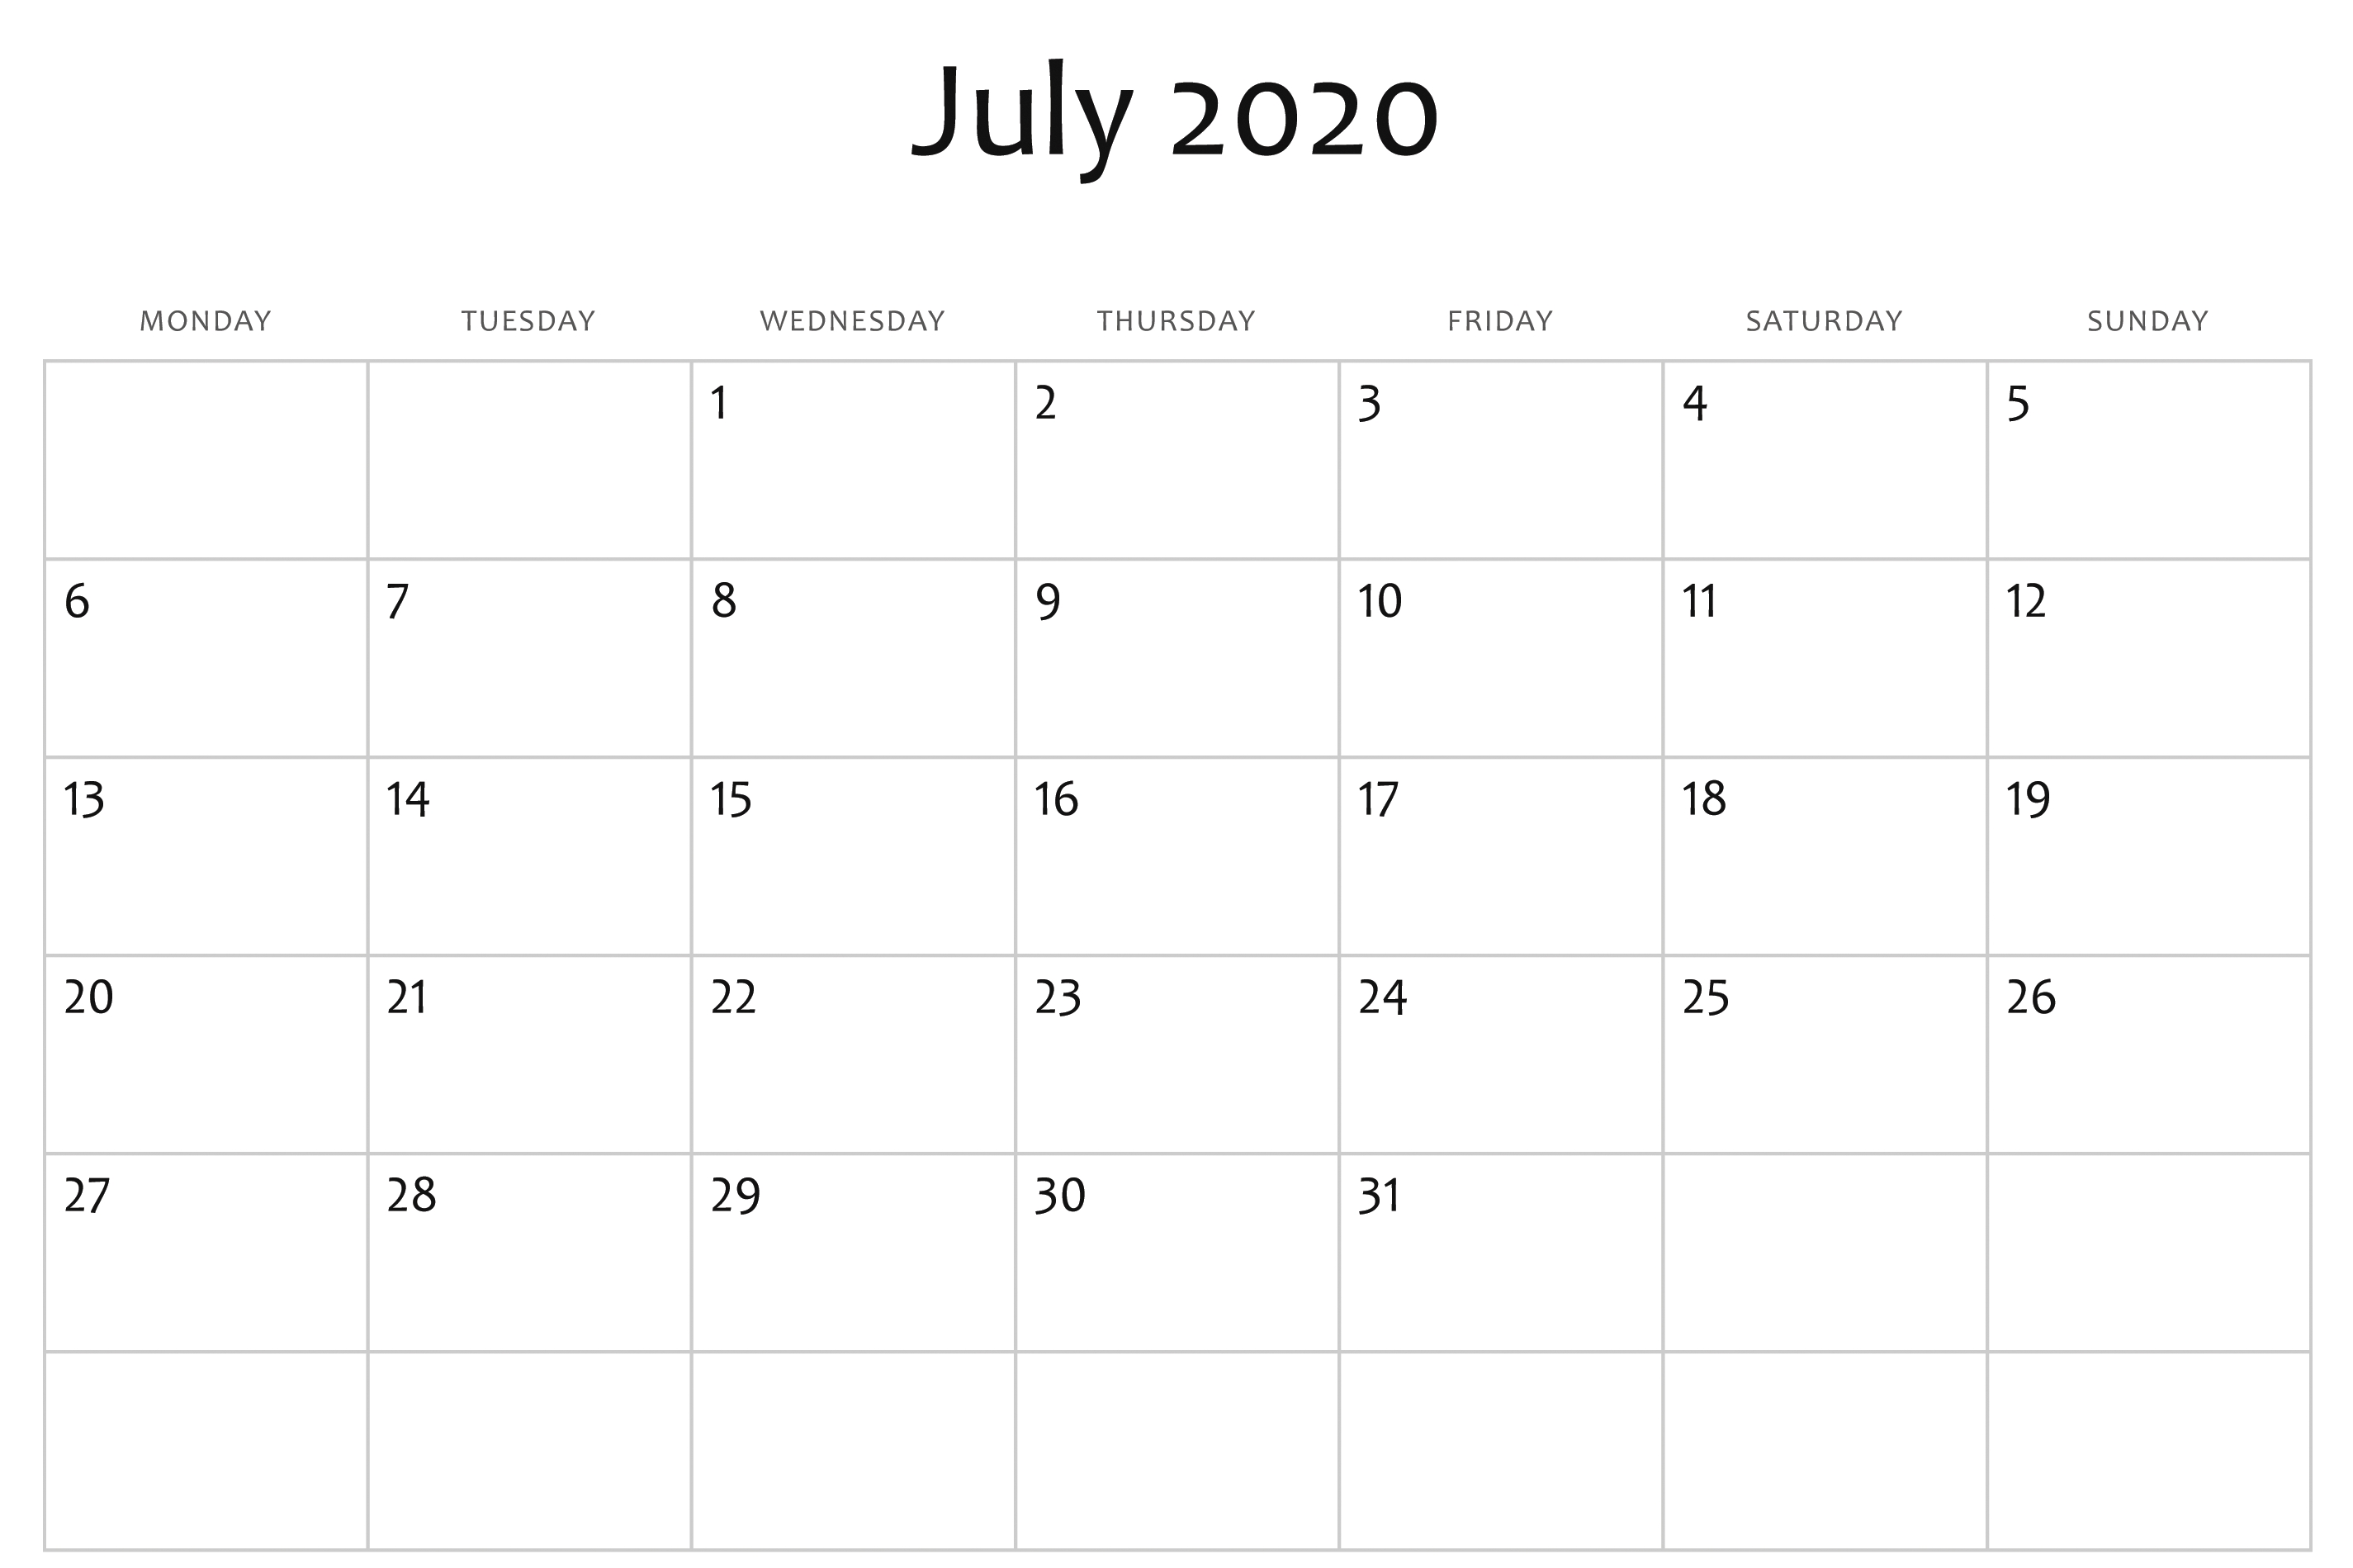 July 2020 Calendar Word | Printable Calendar Template, July